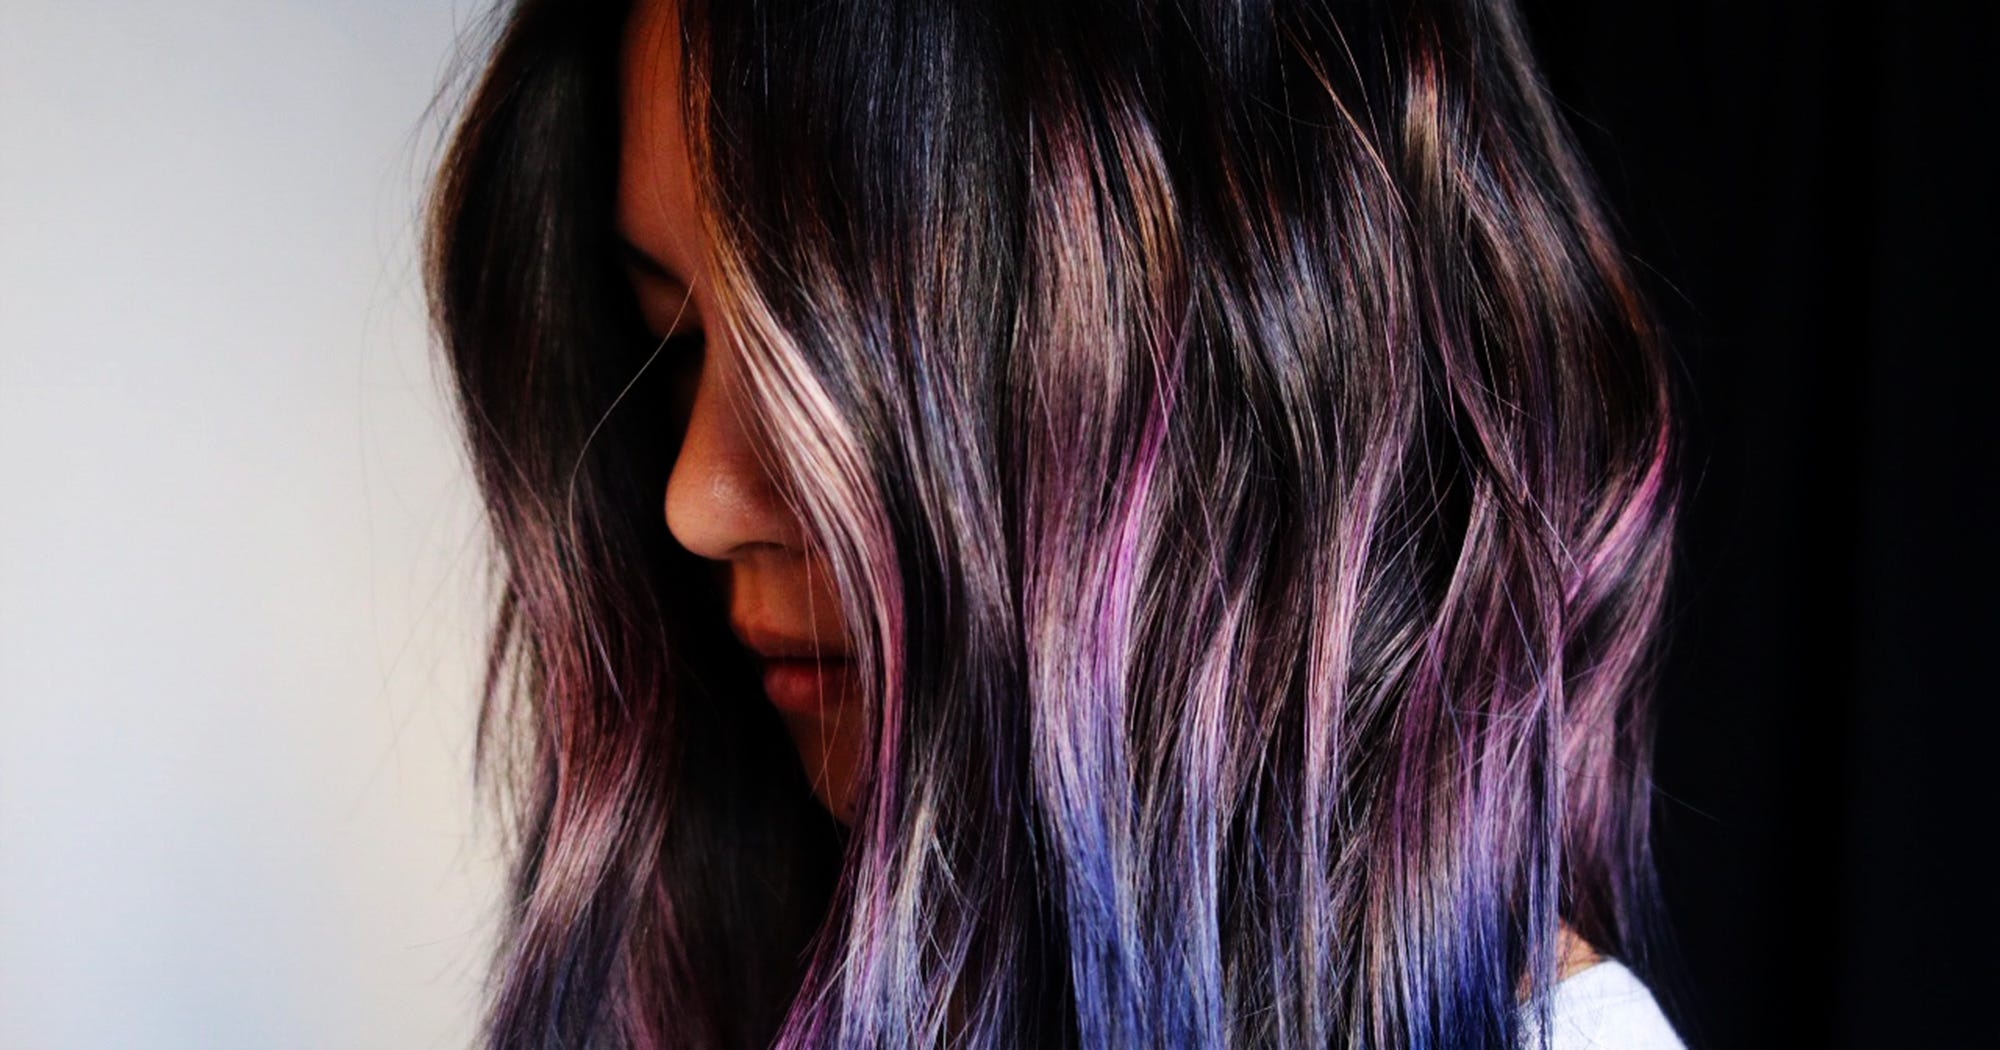 Pink And Purple Hair Styles: Geode Hair Cool Style Purple Pink Blue Colors